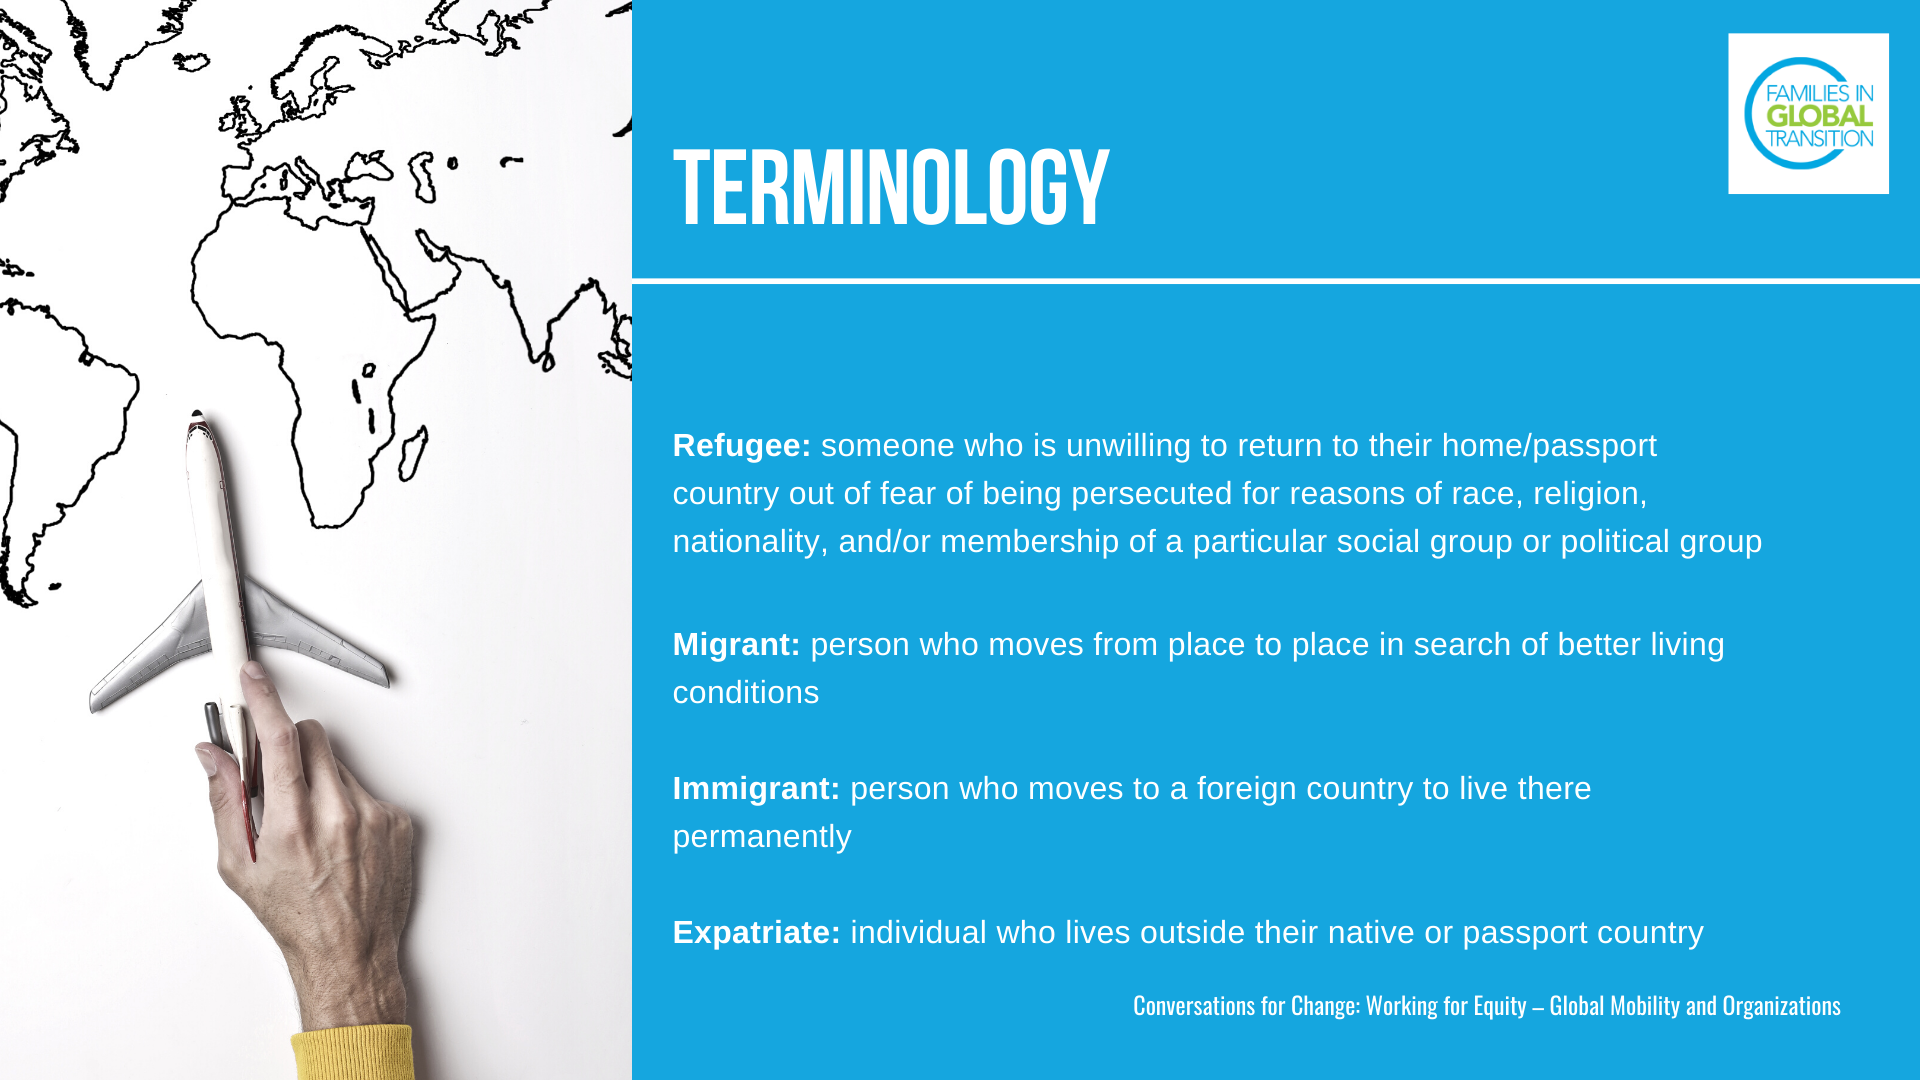 Terminology: definitions of a Refugee: someone who is unwilling to return to their home/passport country out of fear of being persecuted for reasons of race, religion, nationality, and/or membership of a particular social group or political group. Migrant: person who moves from place to place in search of better living conditions. Immigrant: person who moves to a foreign country to live there permanently. Expatriate: individual who lives outside their native or passport country